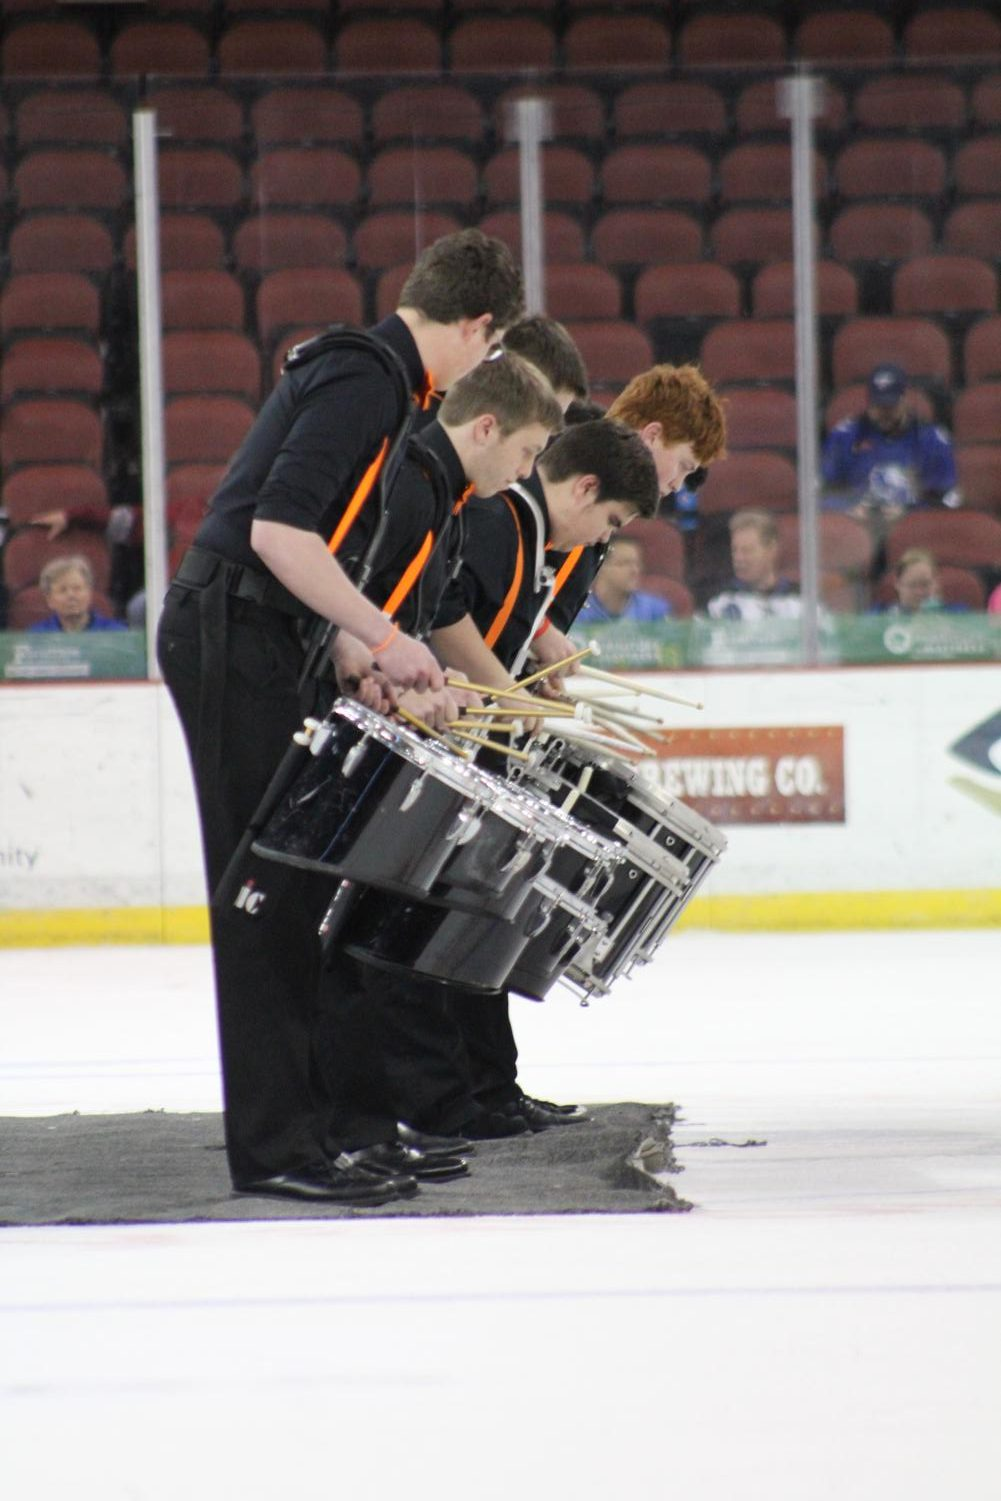 Drumline+performs+the+cadence+%E2%80%9CCheetah%22+at+the+Wichita+Thunder+hockey+game+April+3.+The+drumline+played+during+an+intermission+of+the+game.++